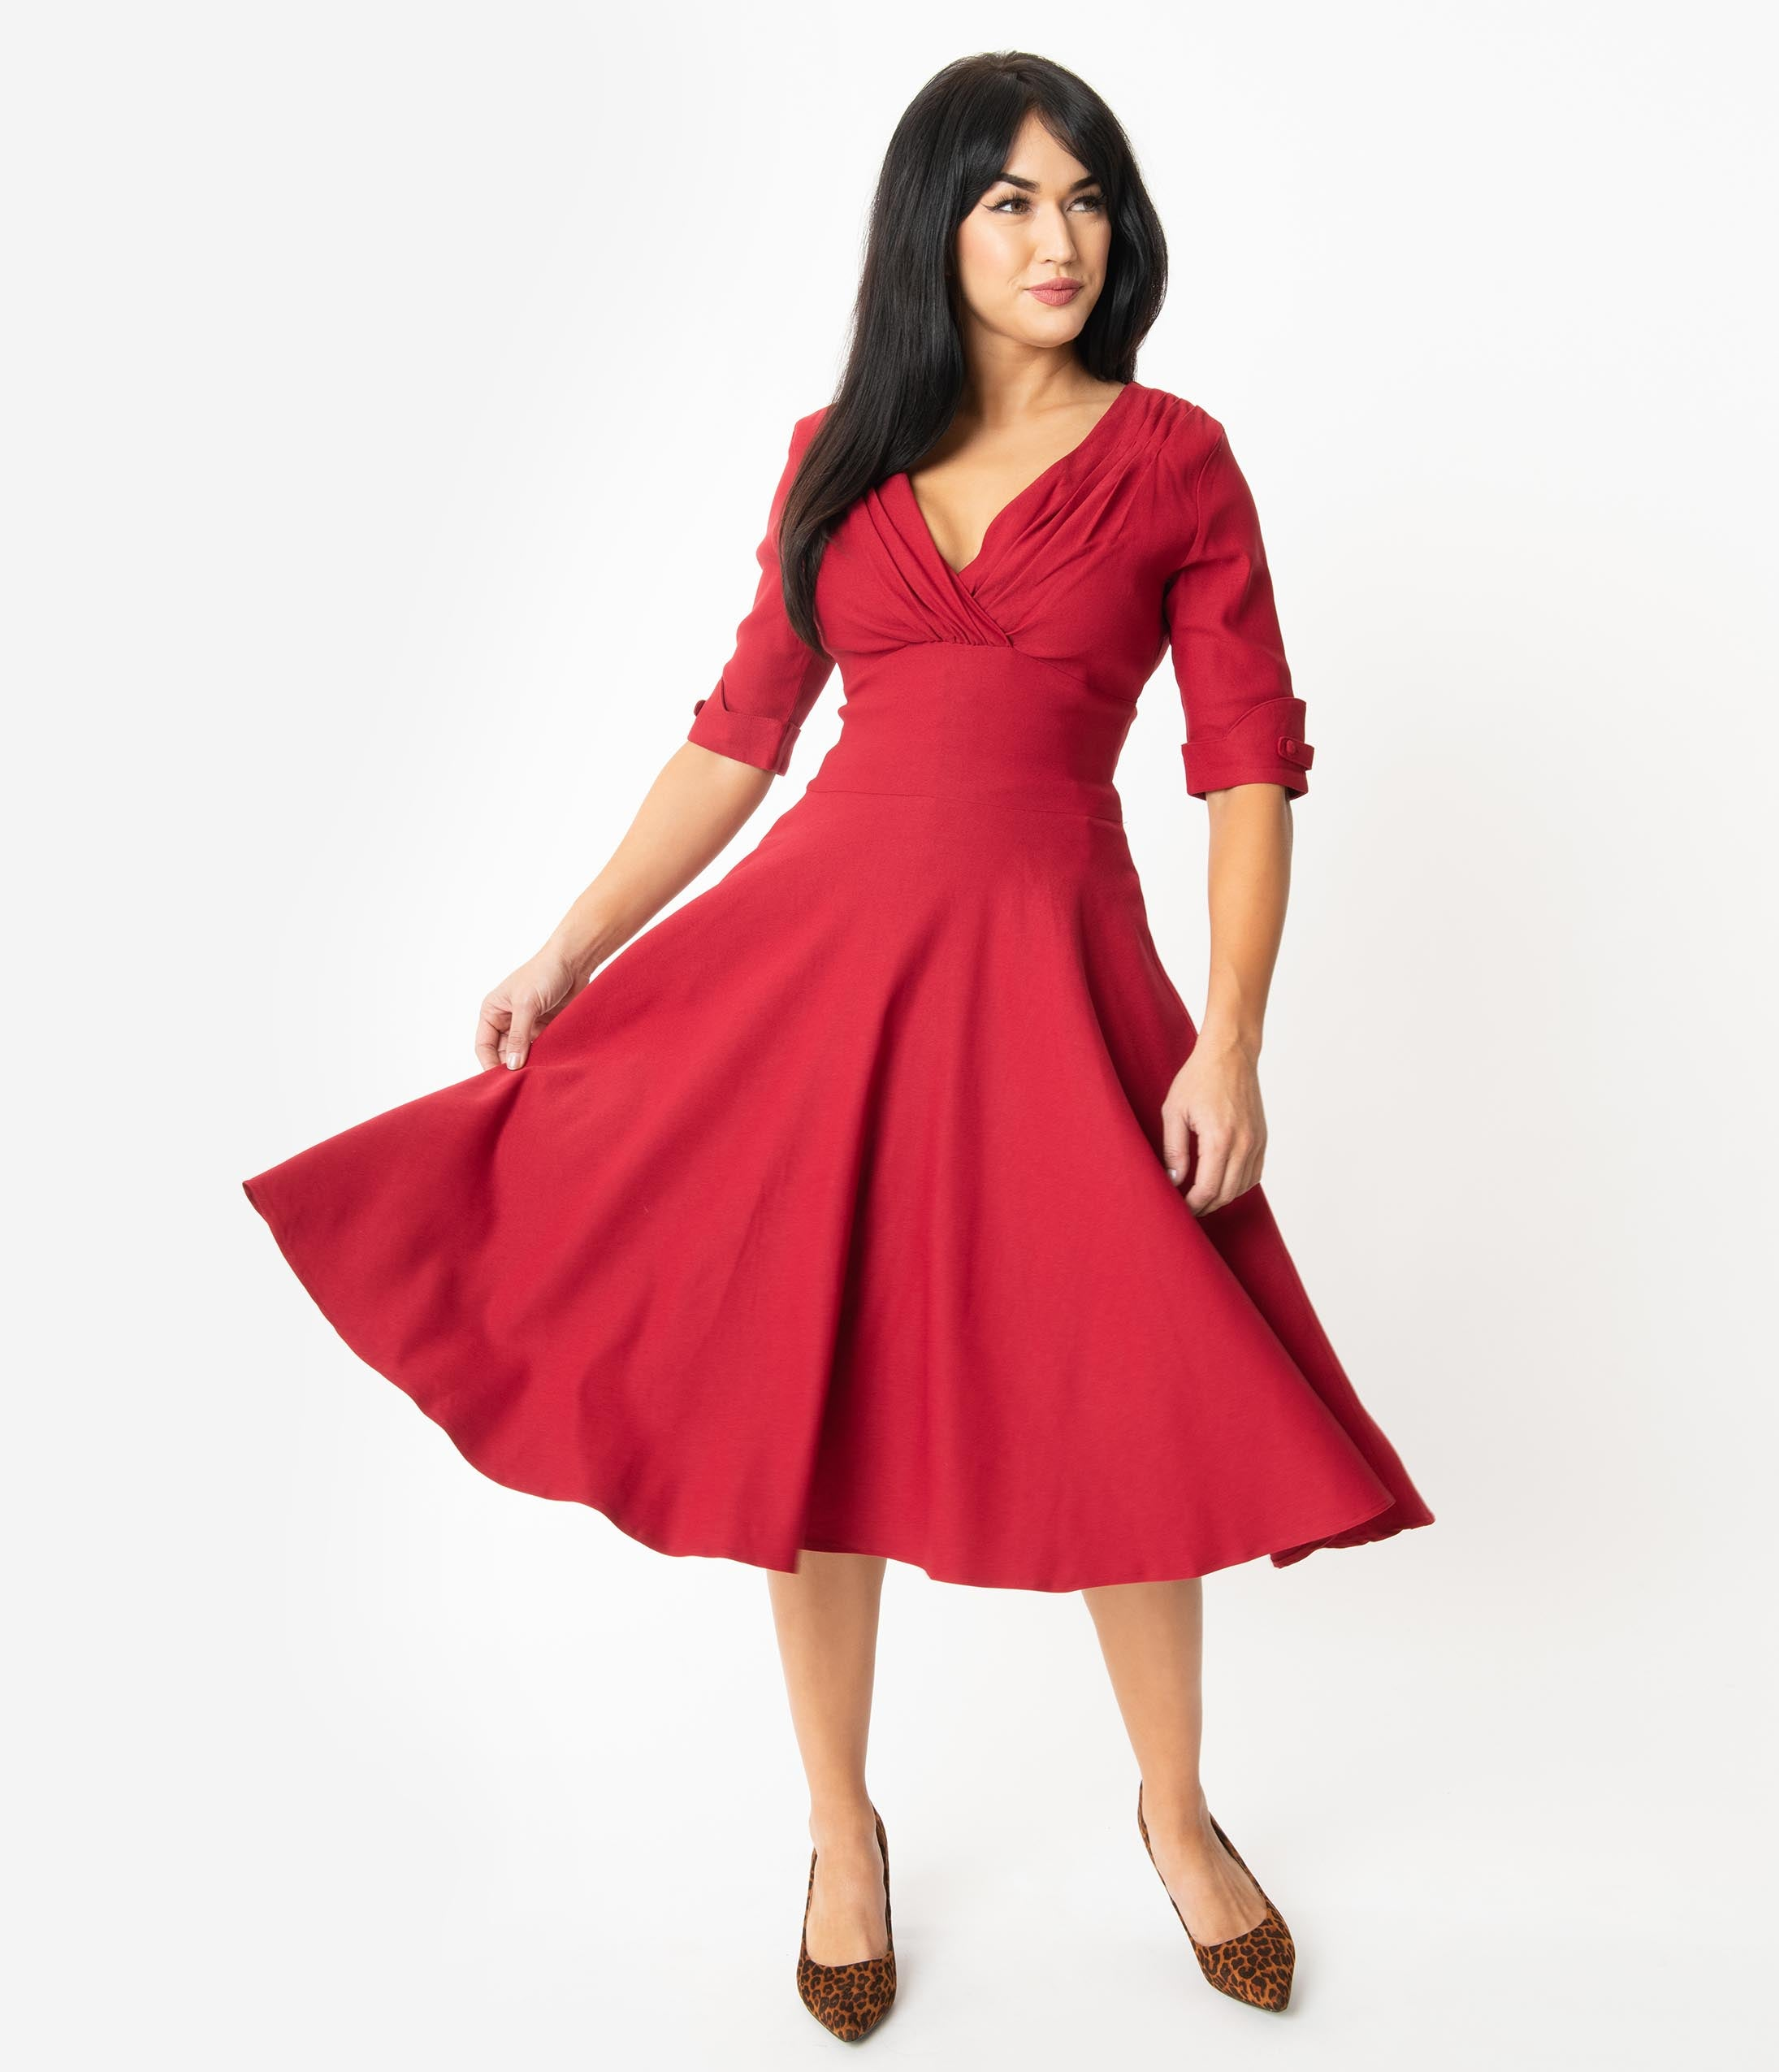 500 Vintage Style Dresses for Sale | Vintage Inspired Dresses Unique Vintage 1950S Merlot Red Delores Swing Dress With Sleeves $88.00 AT vintagedancer.com